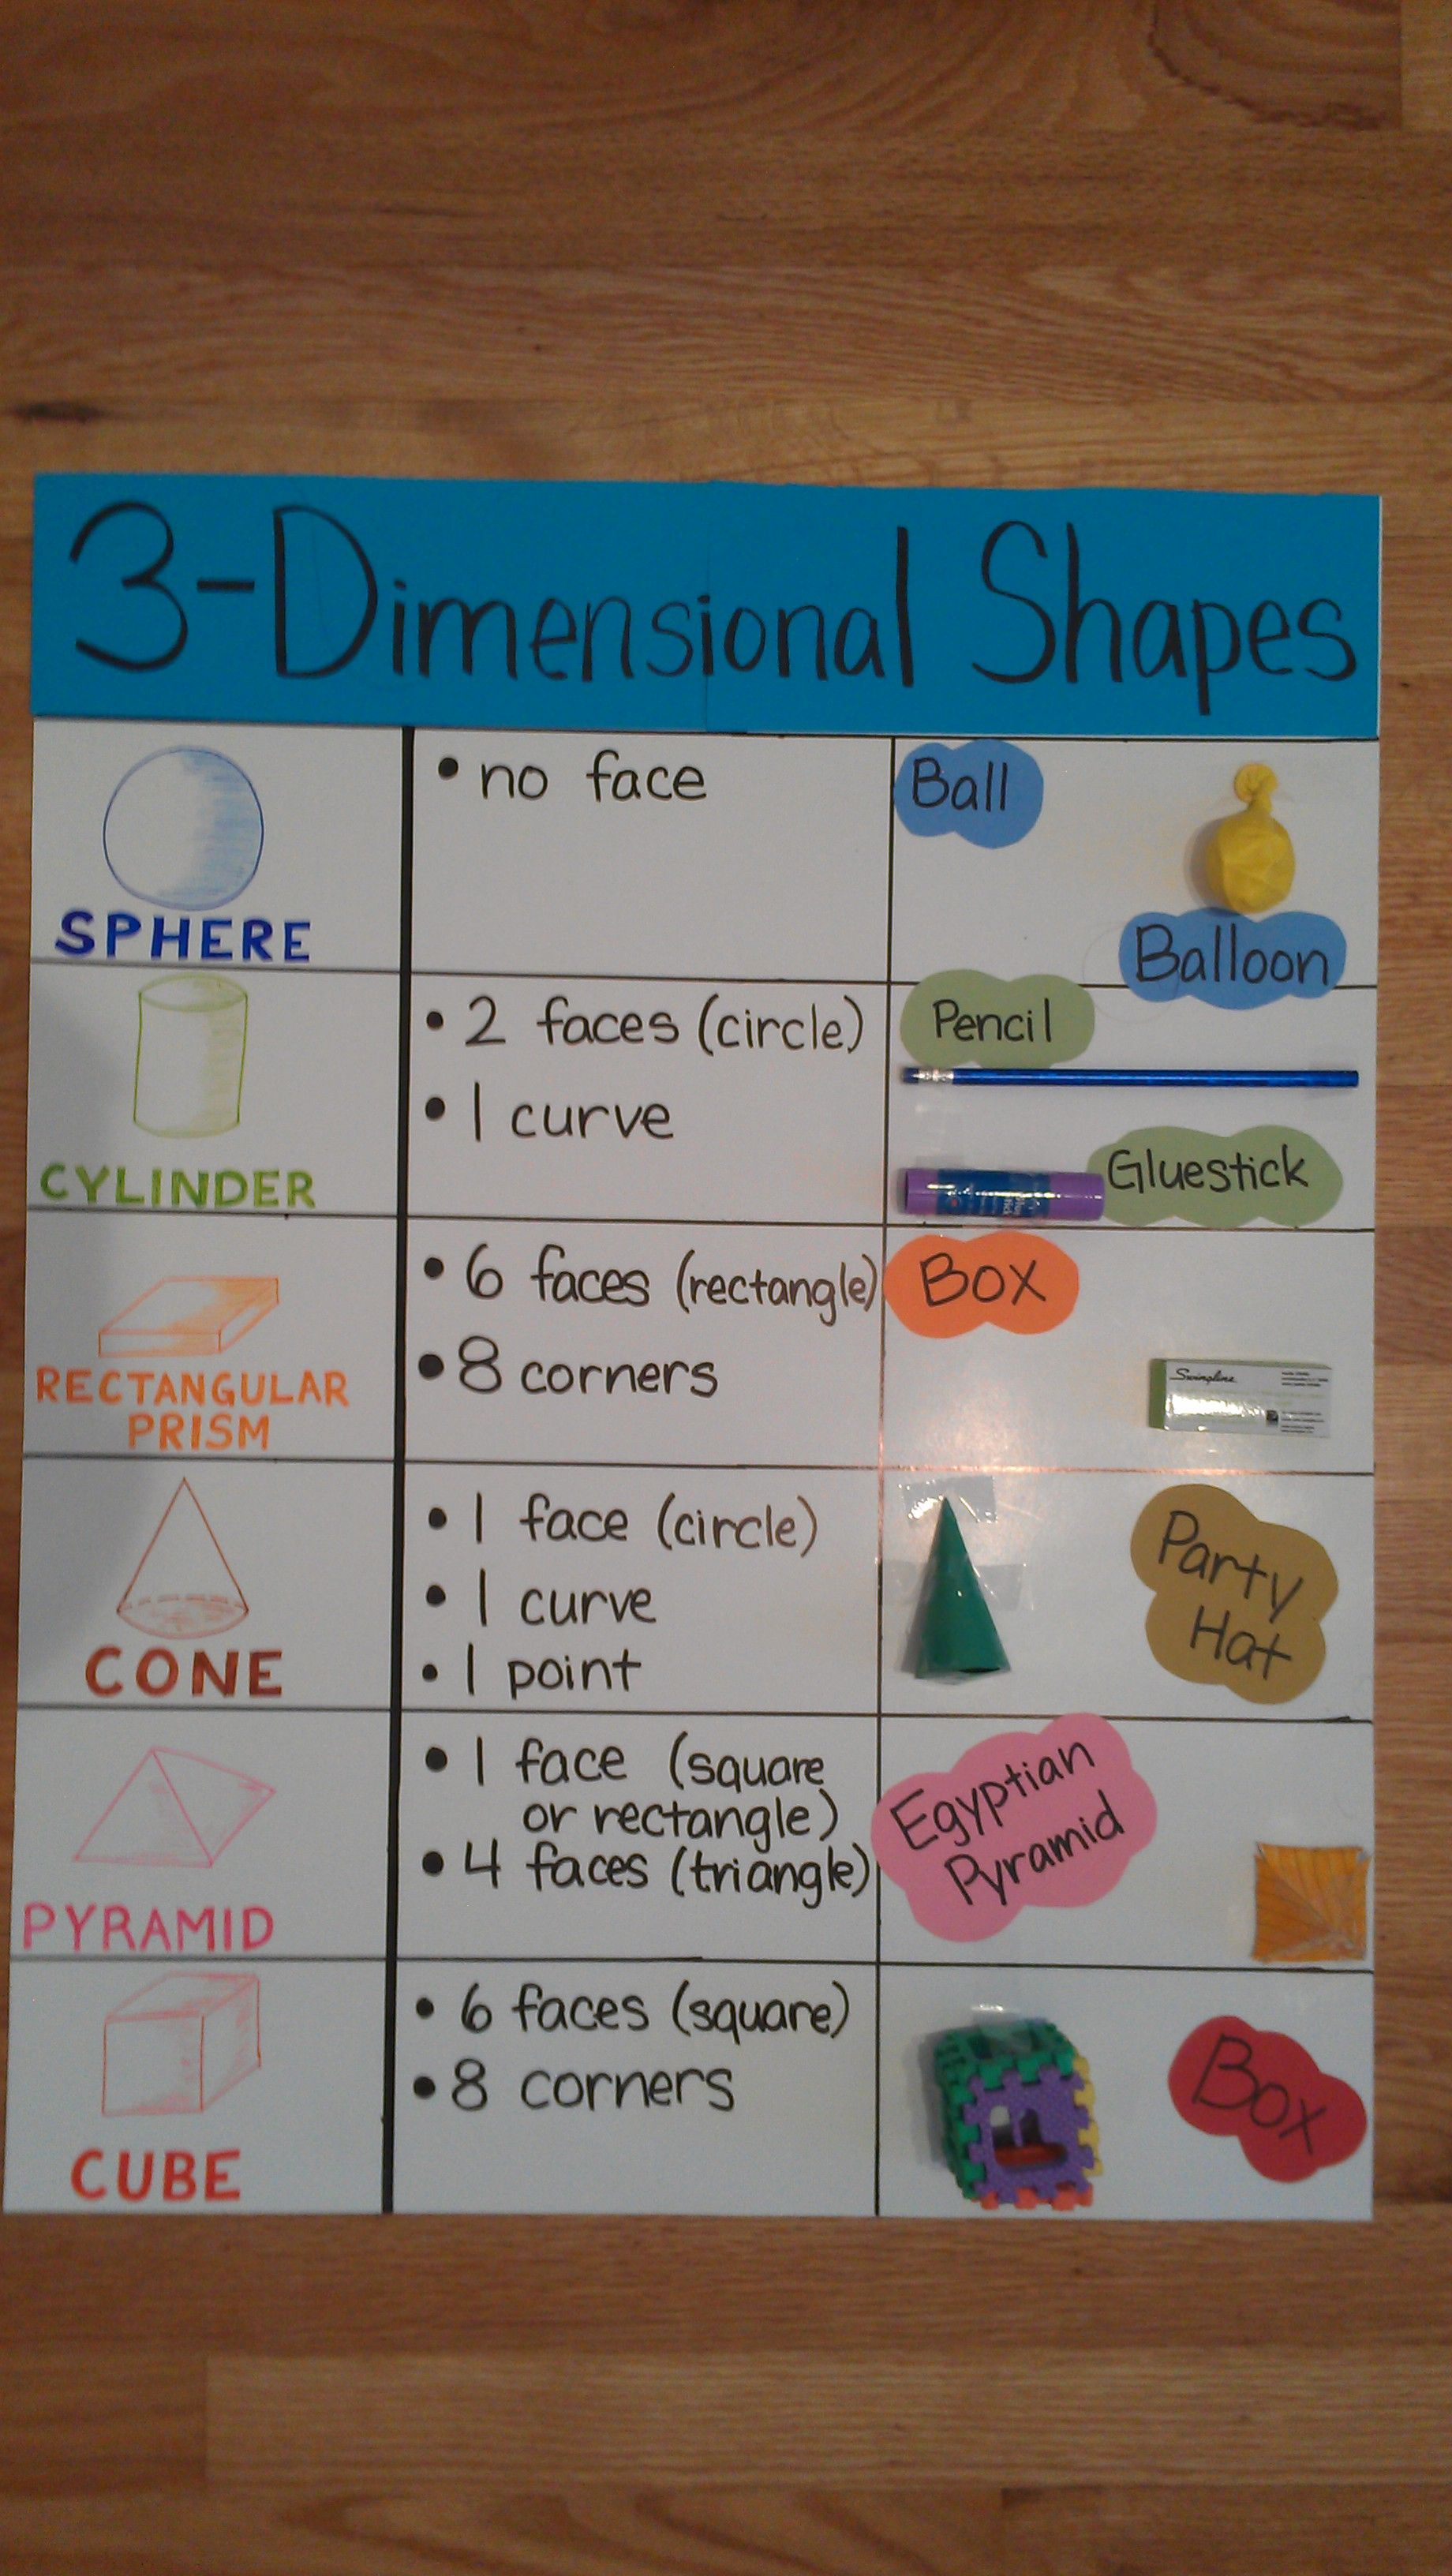 3 Dimensional Shape Poster That Younger Children Can Relate To D It Was A Hit In Our Classroom